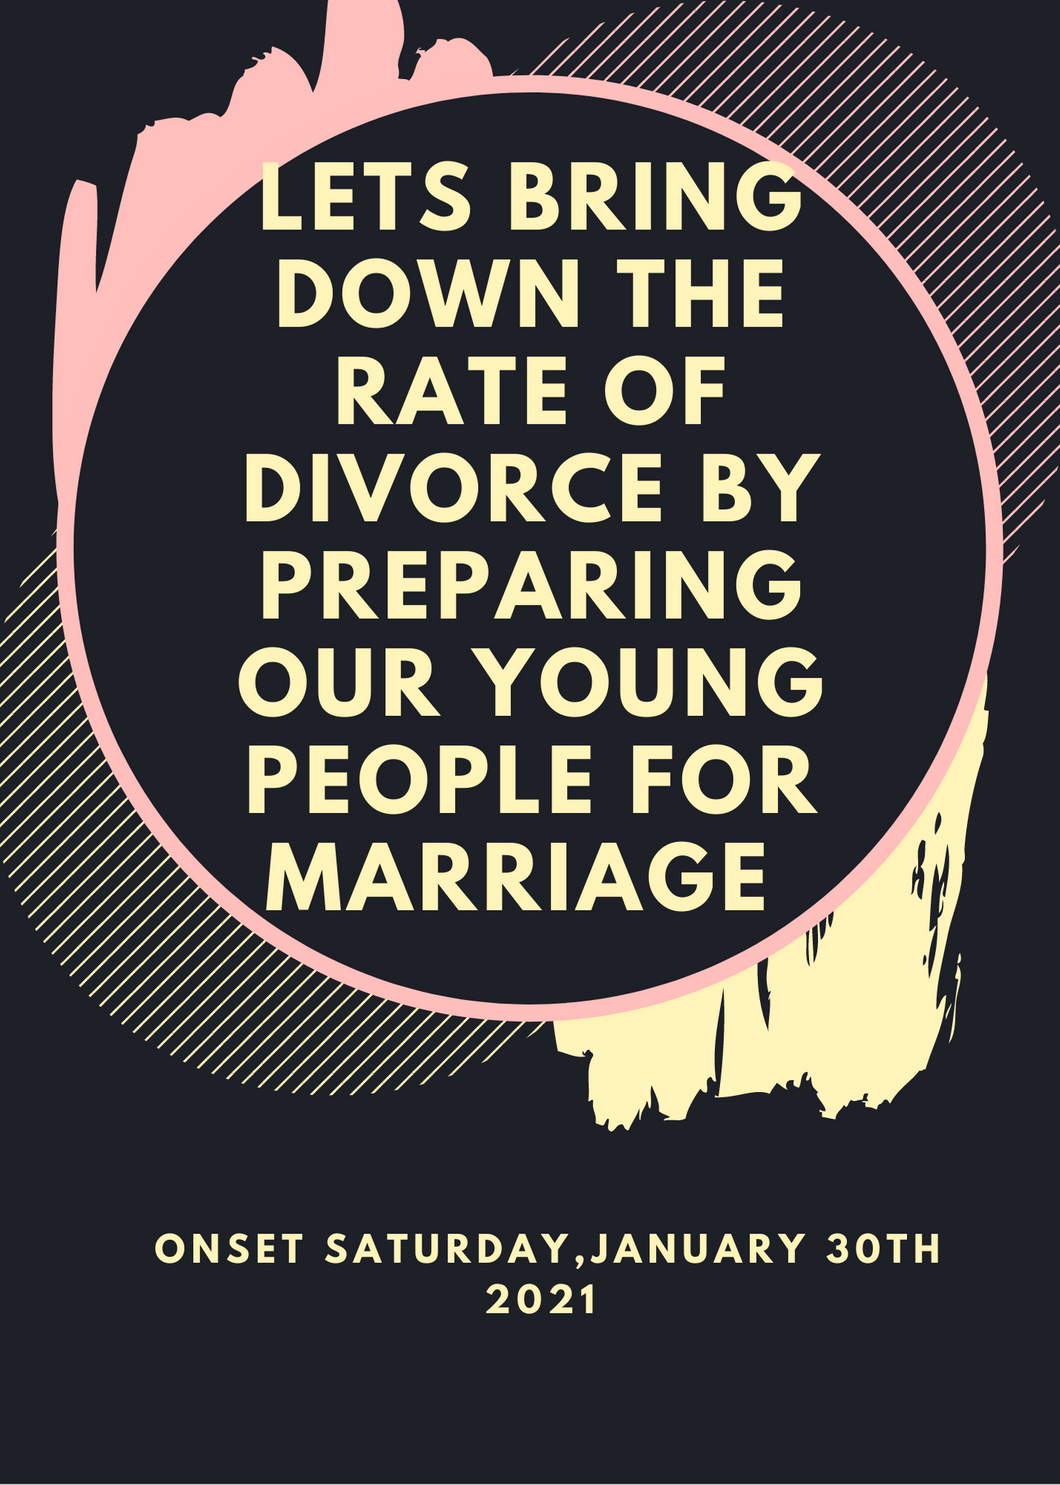 Lets bring down the rate of divorce by preparing our young people for marriage